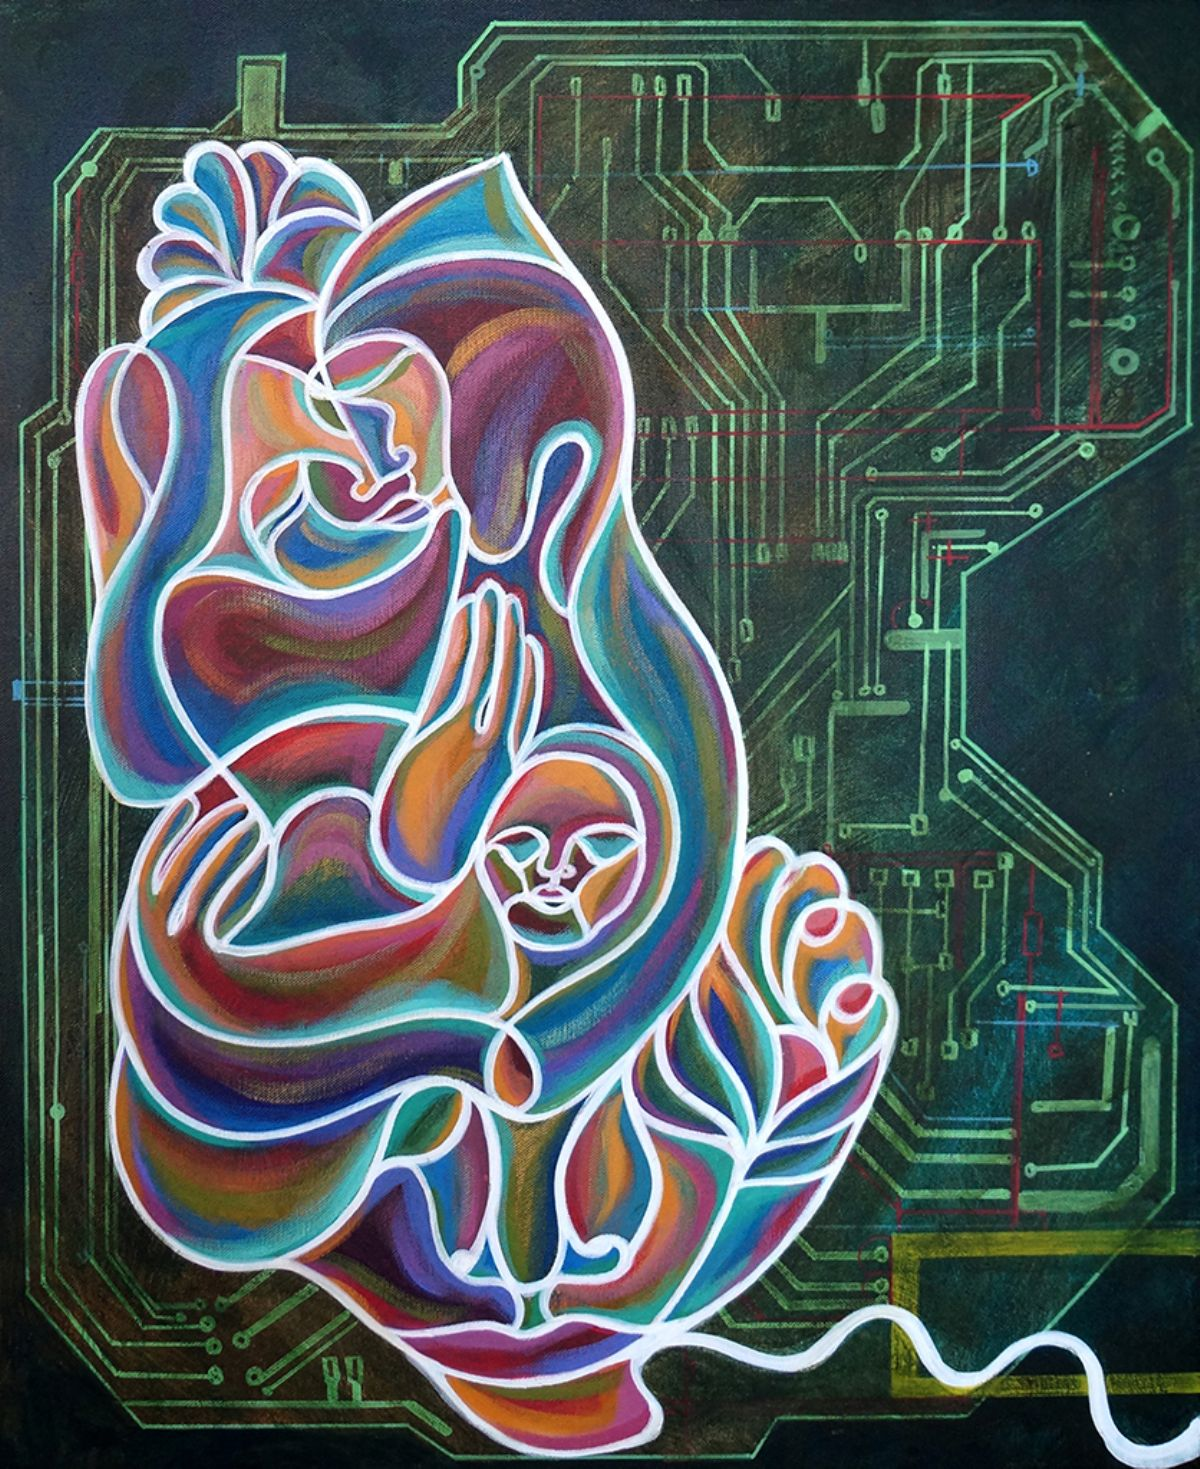 Mother Board Placenta artwork by Ekaterina Abramova - art listed for sale on Artplode